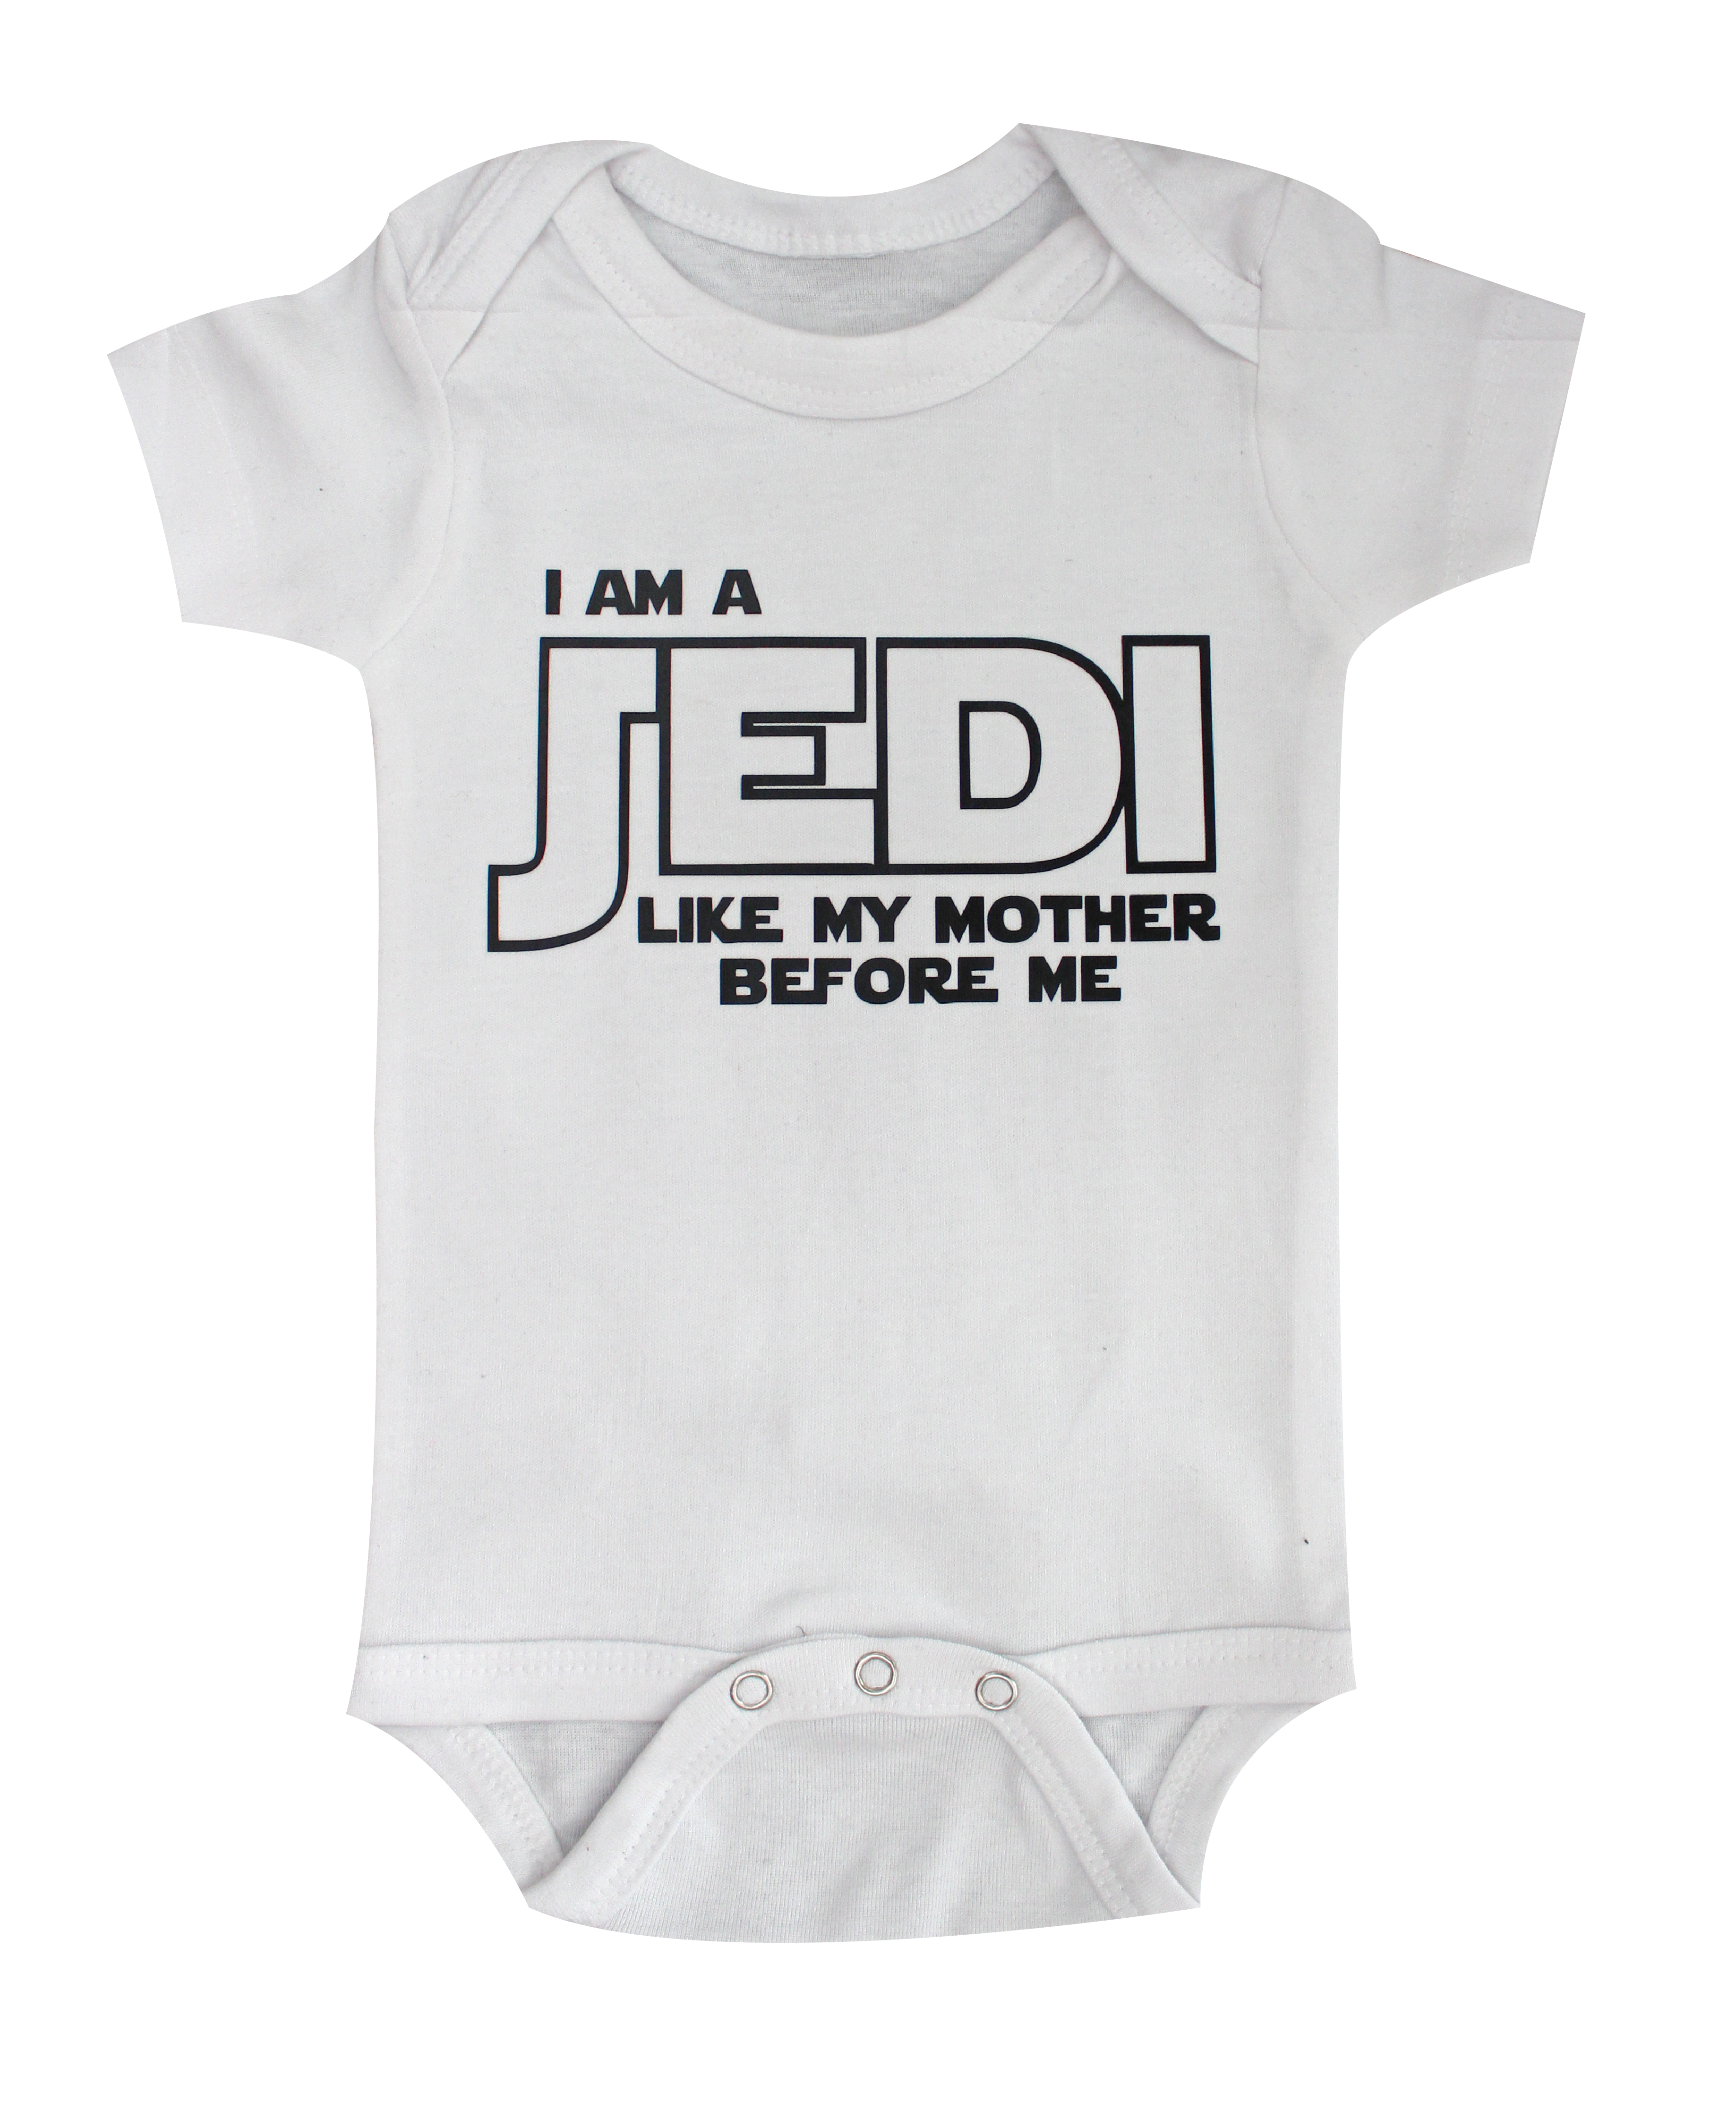 Star Wars Baby I am Jedi like my father before me White ...